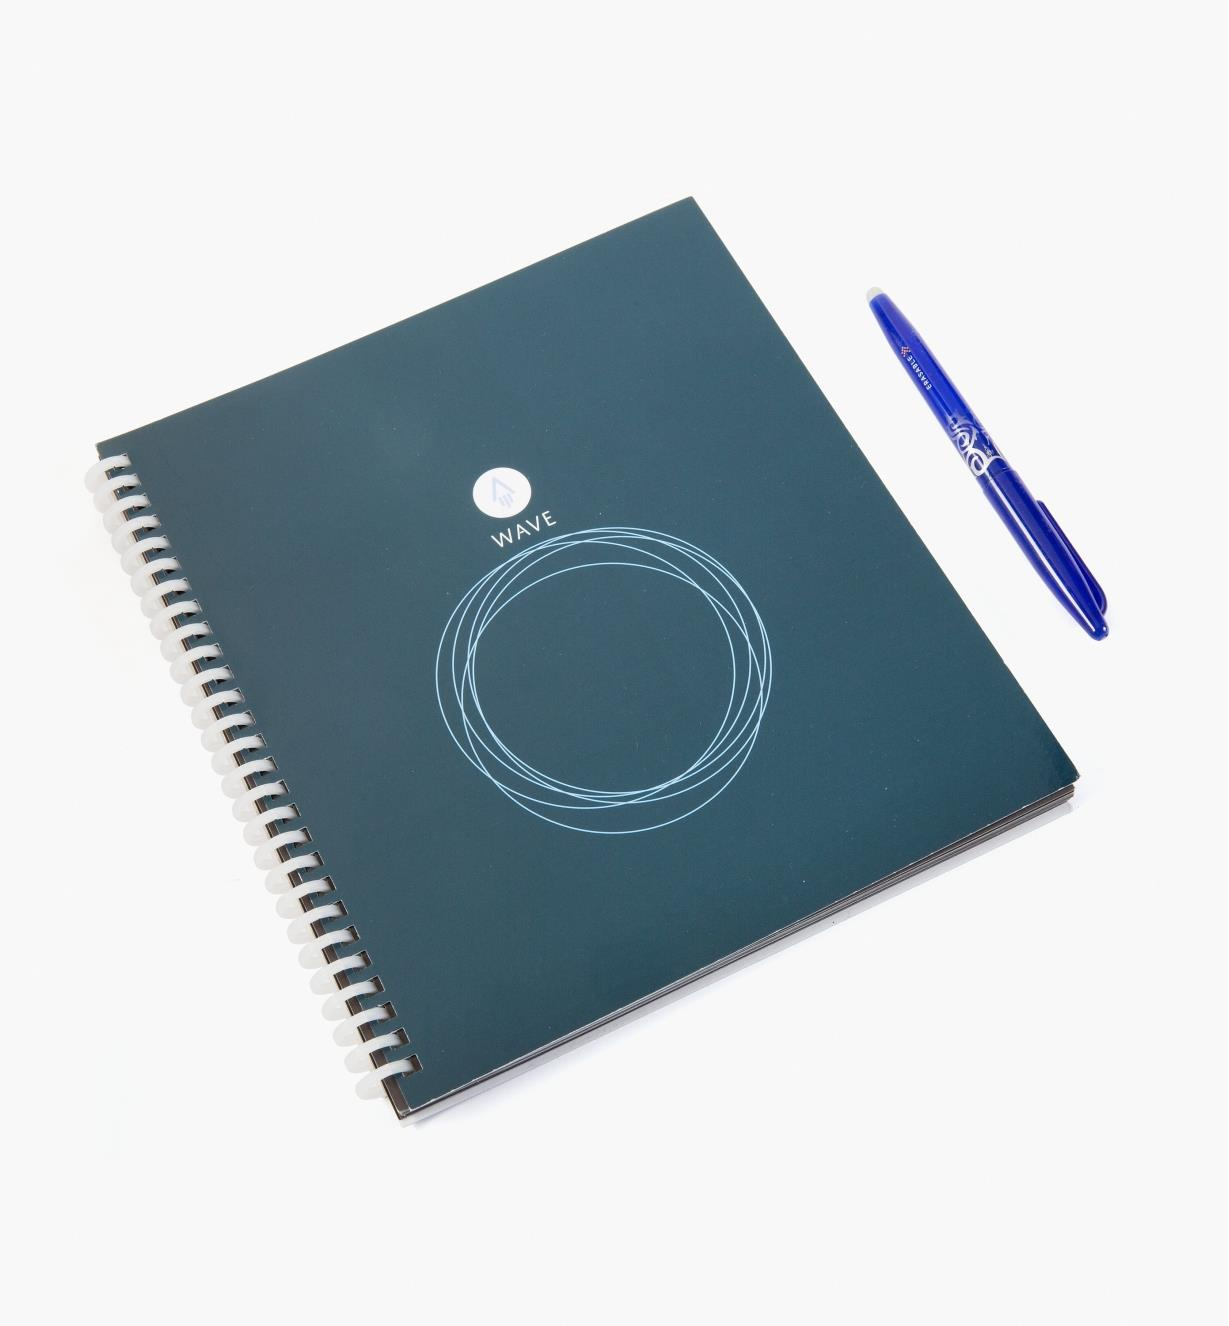 88k9003 - Rocketbook Wave Notebook & Blue FriXion Pen